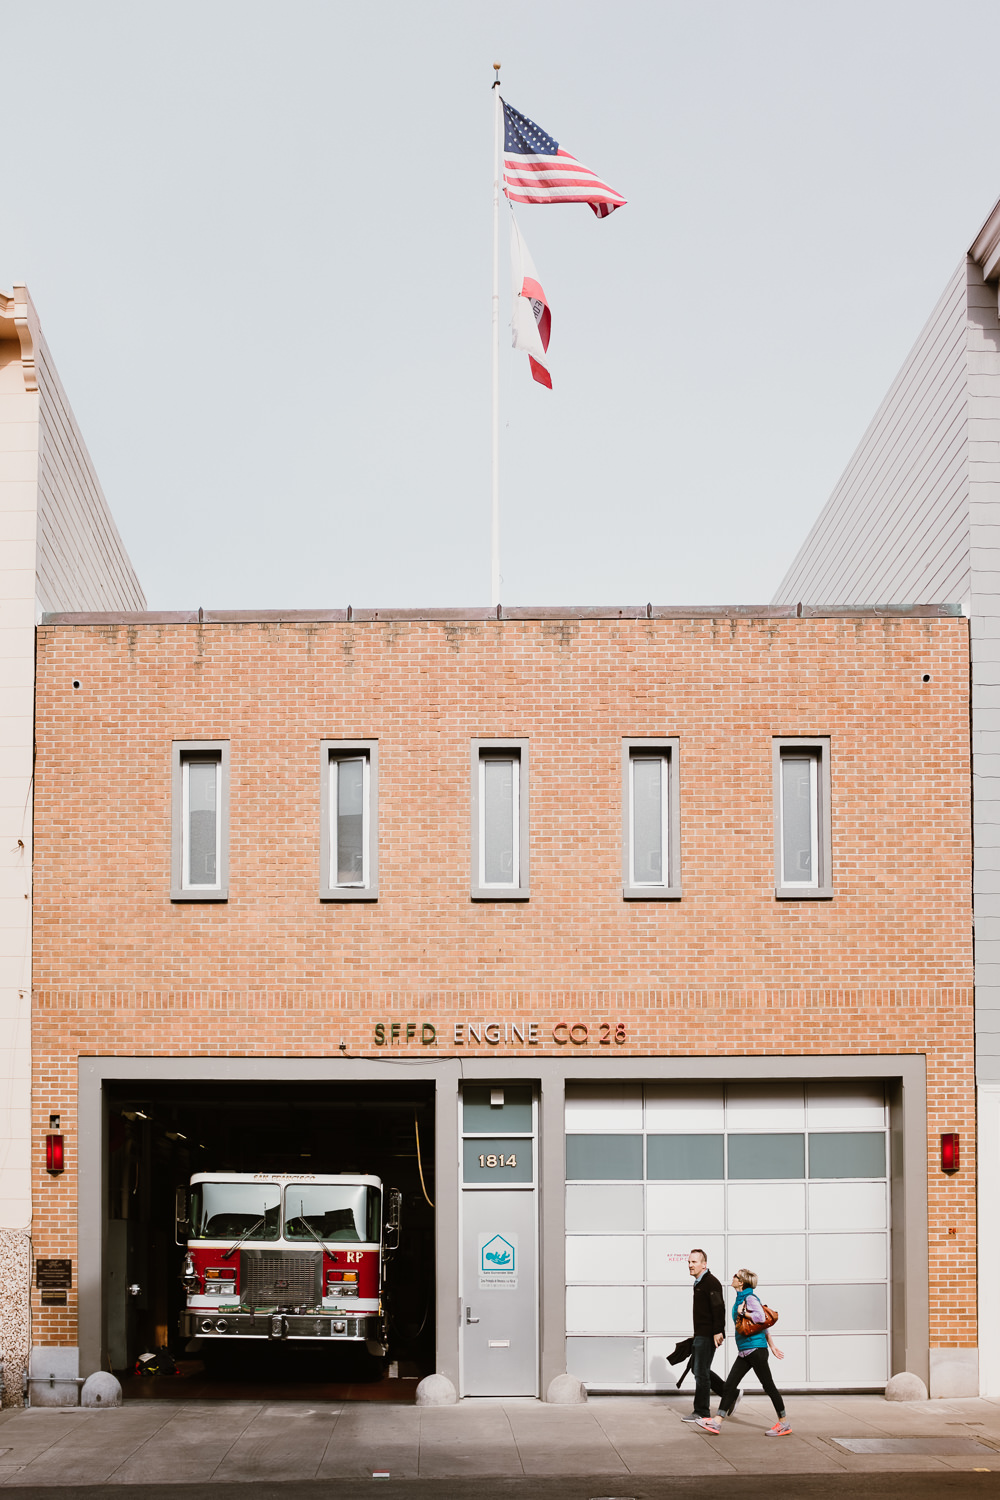 San Francisco Engine Co 28